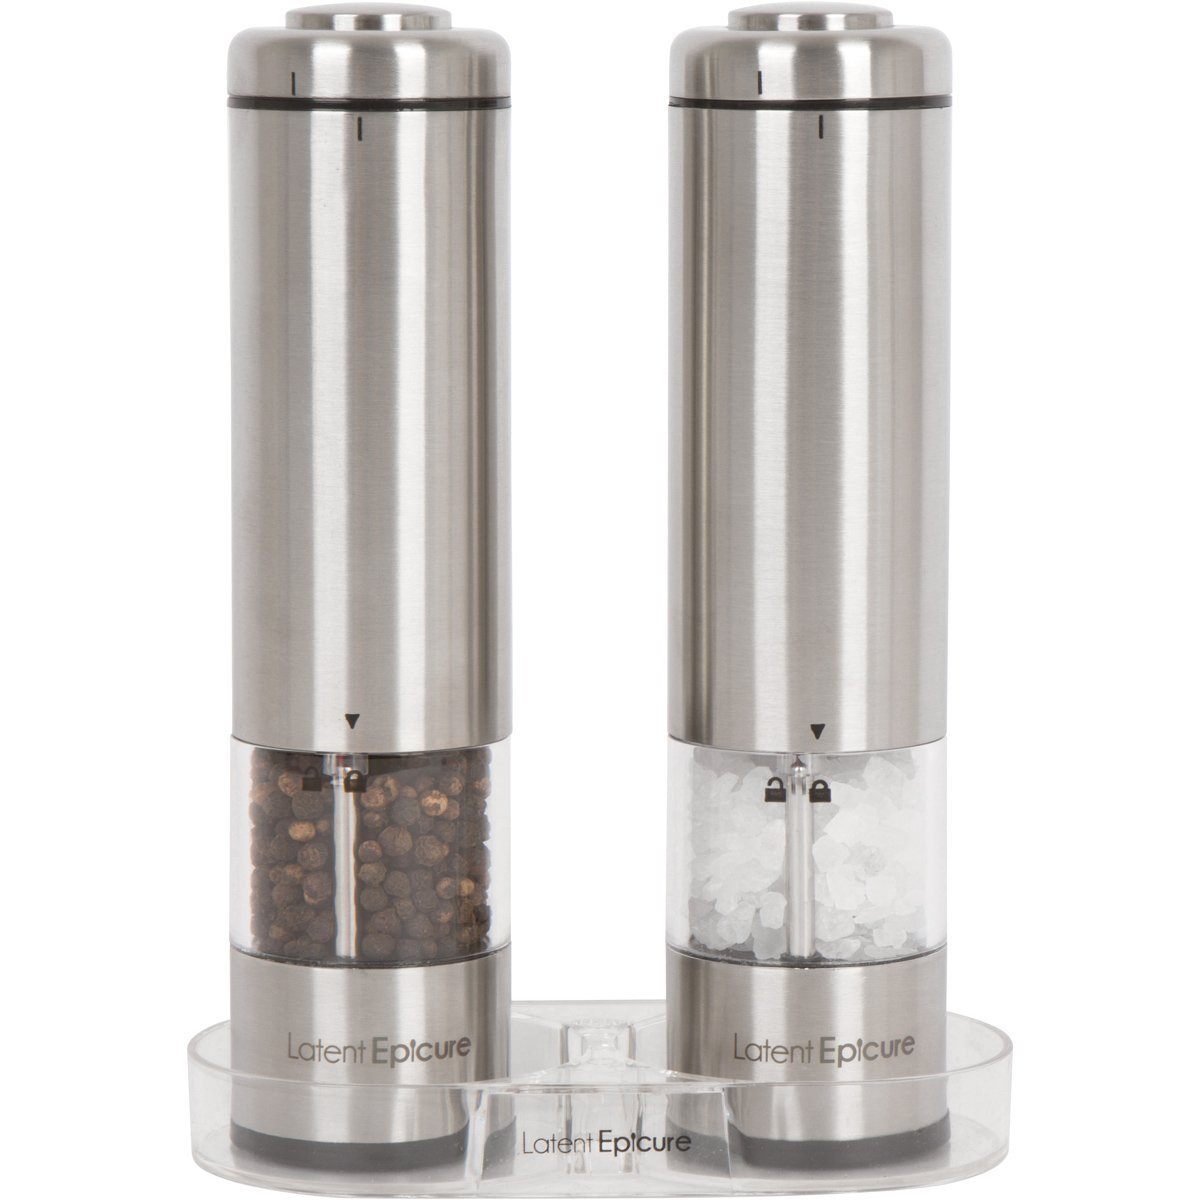 latent epicure battery operated salt and pepper grinder. Black Bedroom Furniture Sets. Home Design Ideas